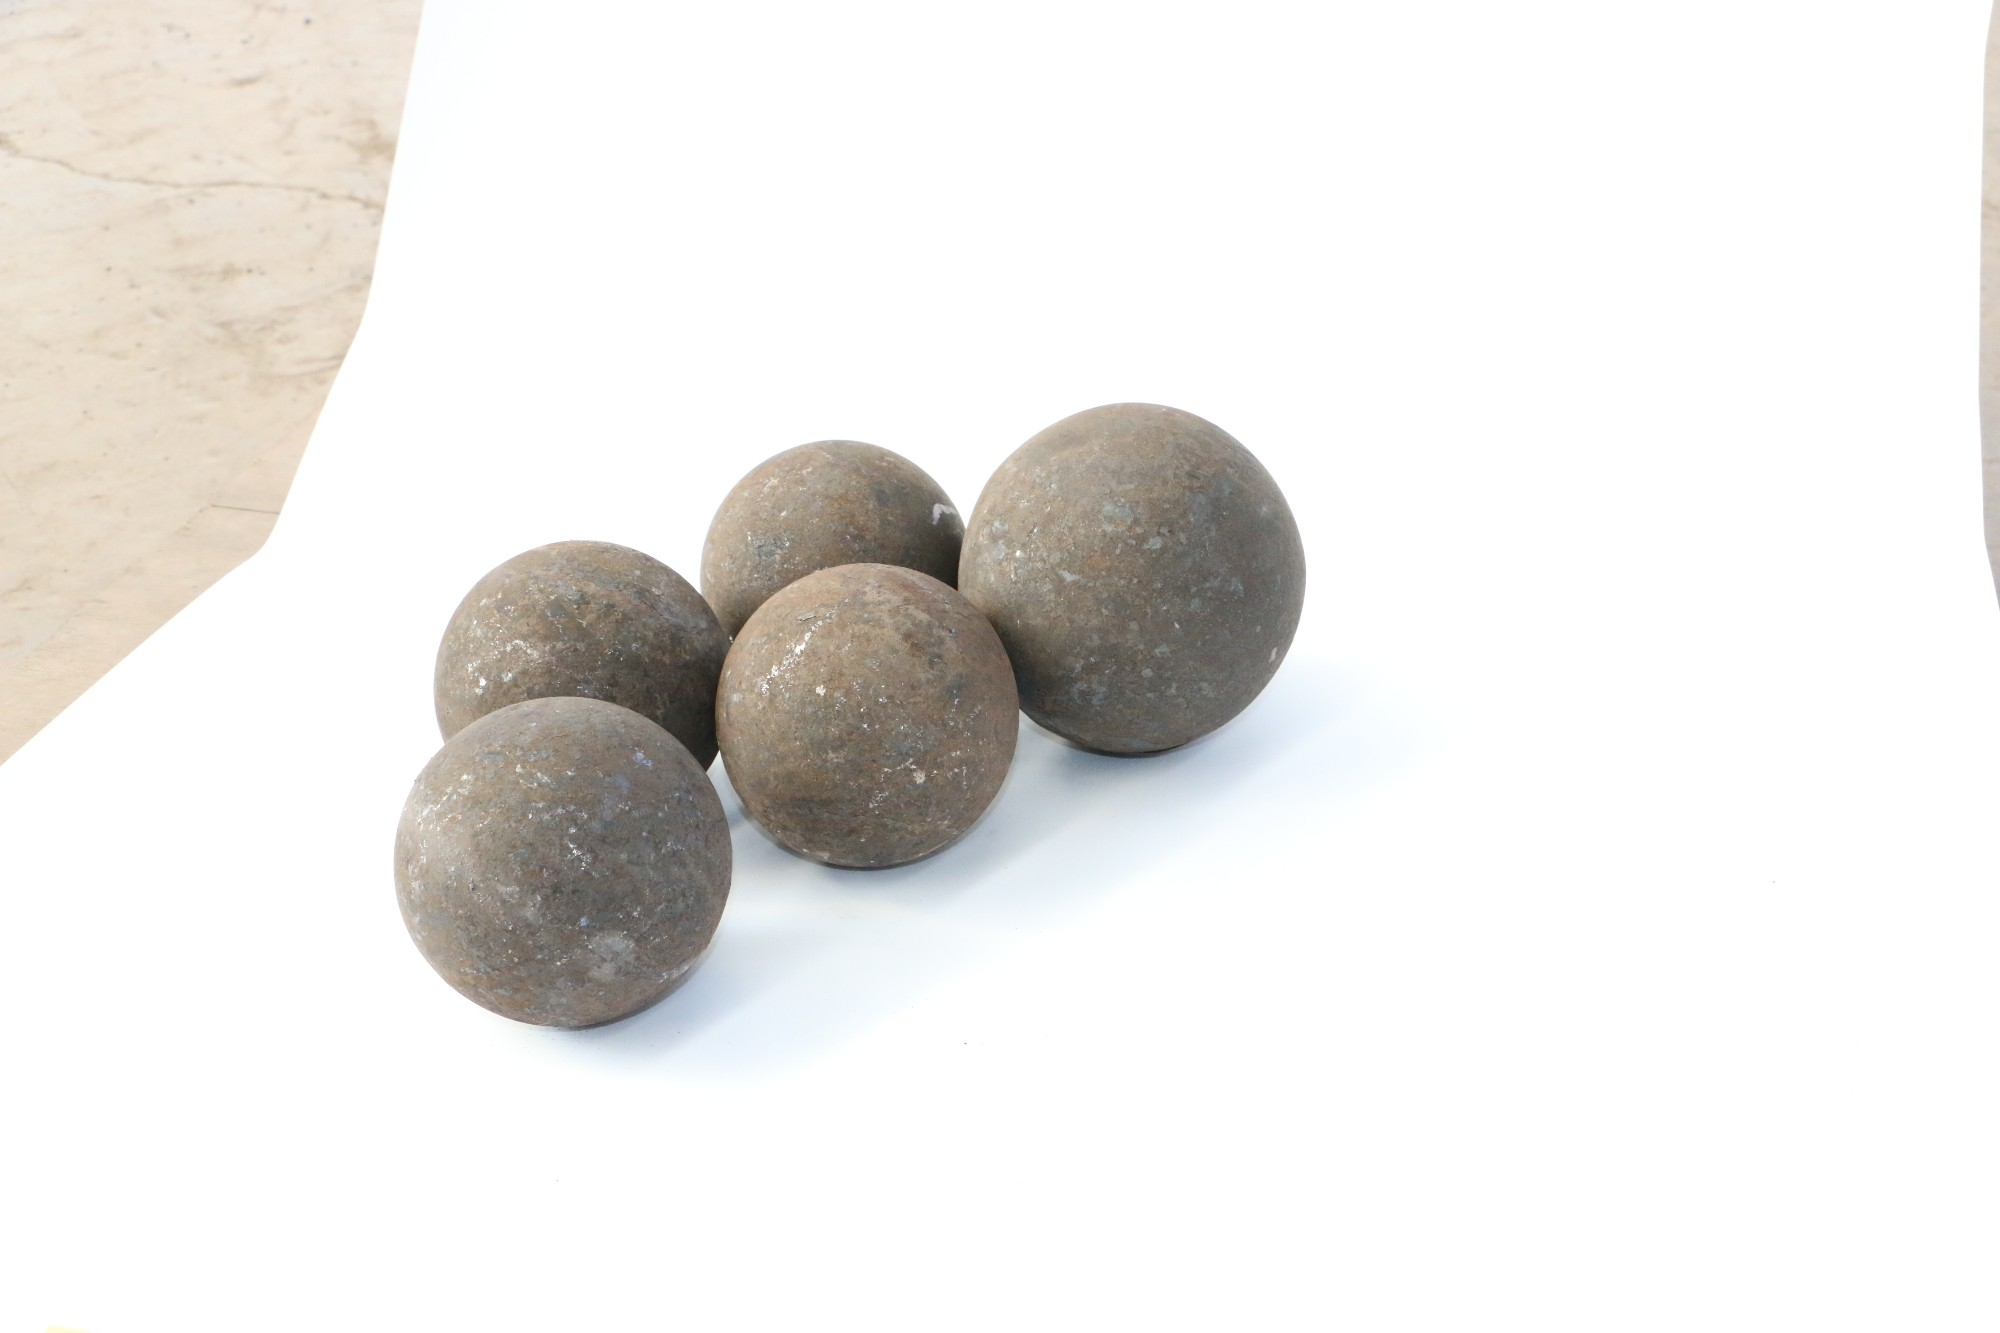 Forged Balls For Cooper Mining Manufacturers, Forged Balls For Cooper Mining Factory, Supply Forged Balls For Cooper Mining